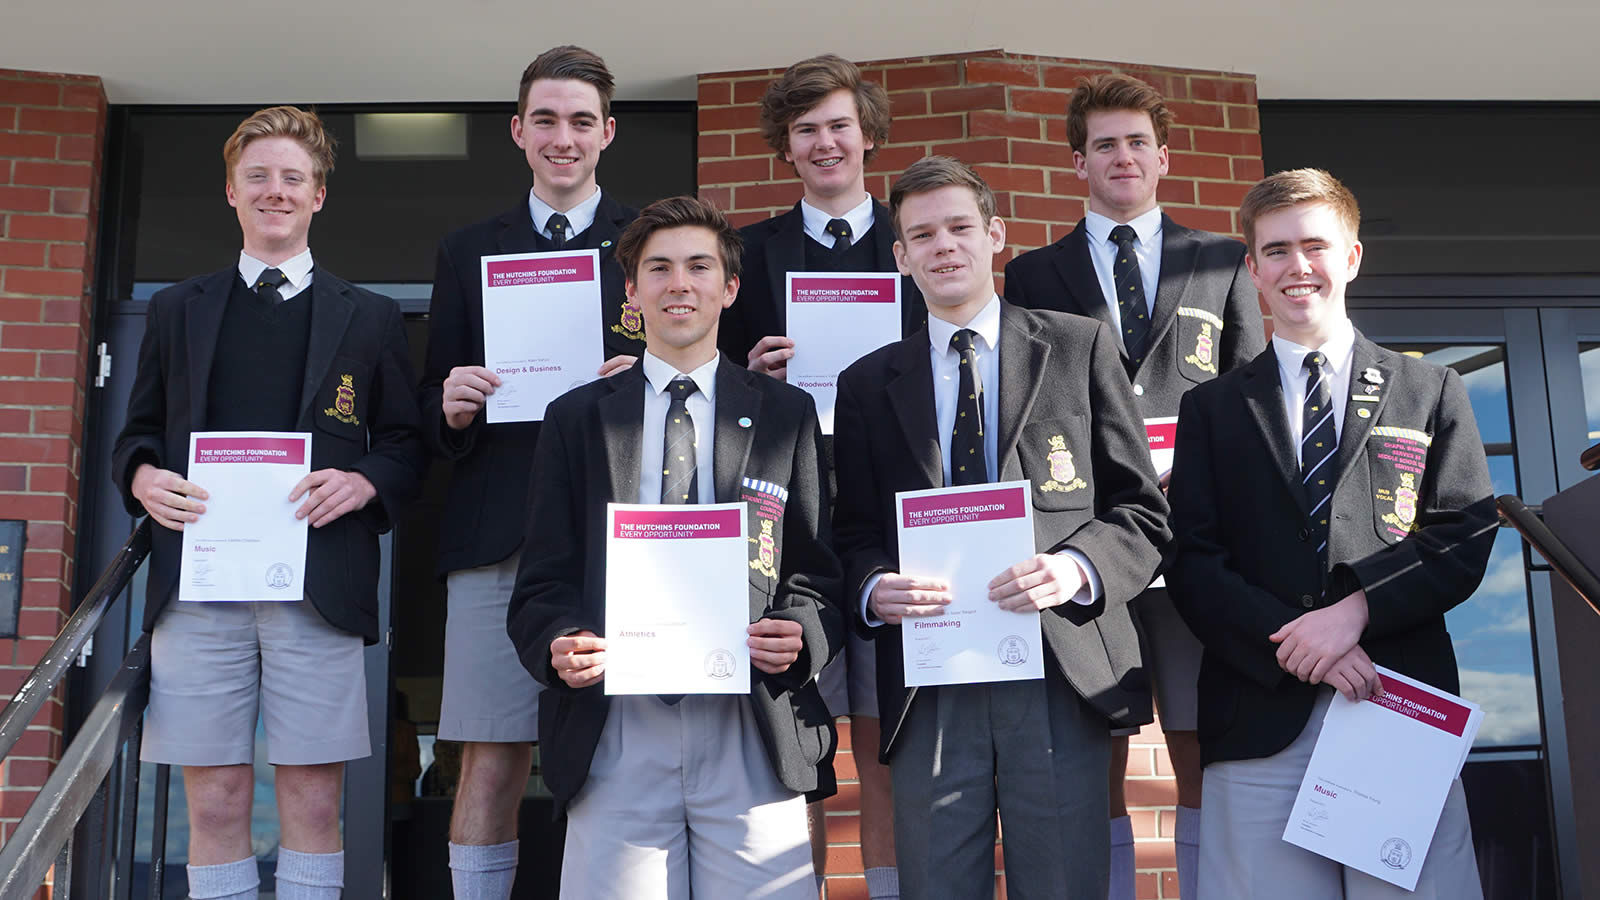 Back row L–R Lachlan Chambers, Adam Nyhuis, Caleb Oakes and Samuel King. Front row L–R Harvey Chilcott, Isaac Sargent and Thomas Young.